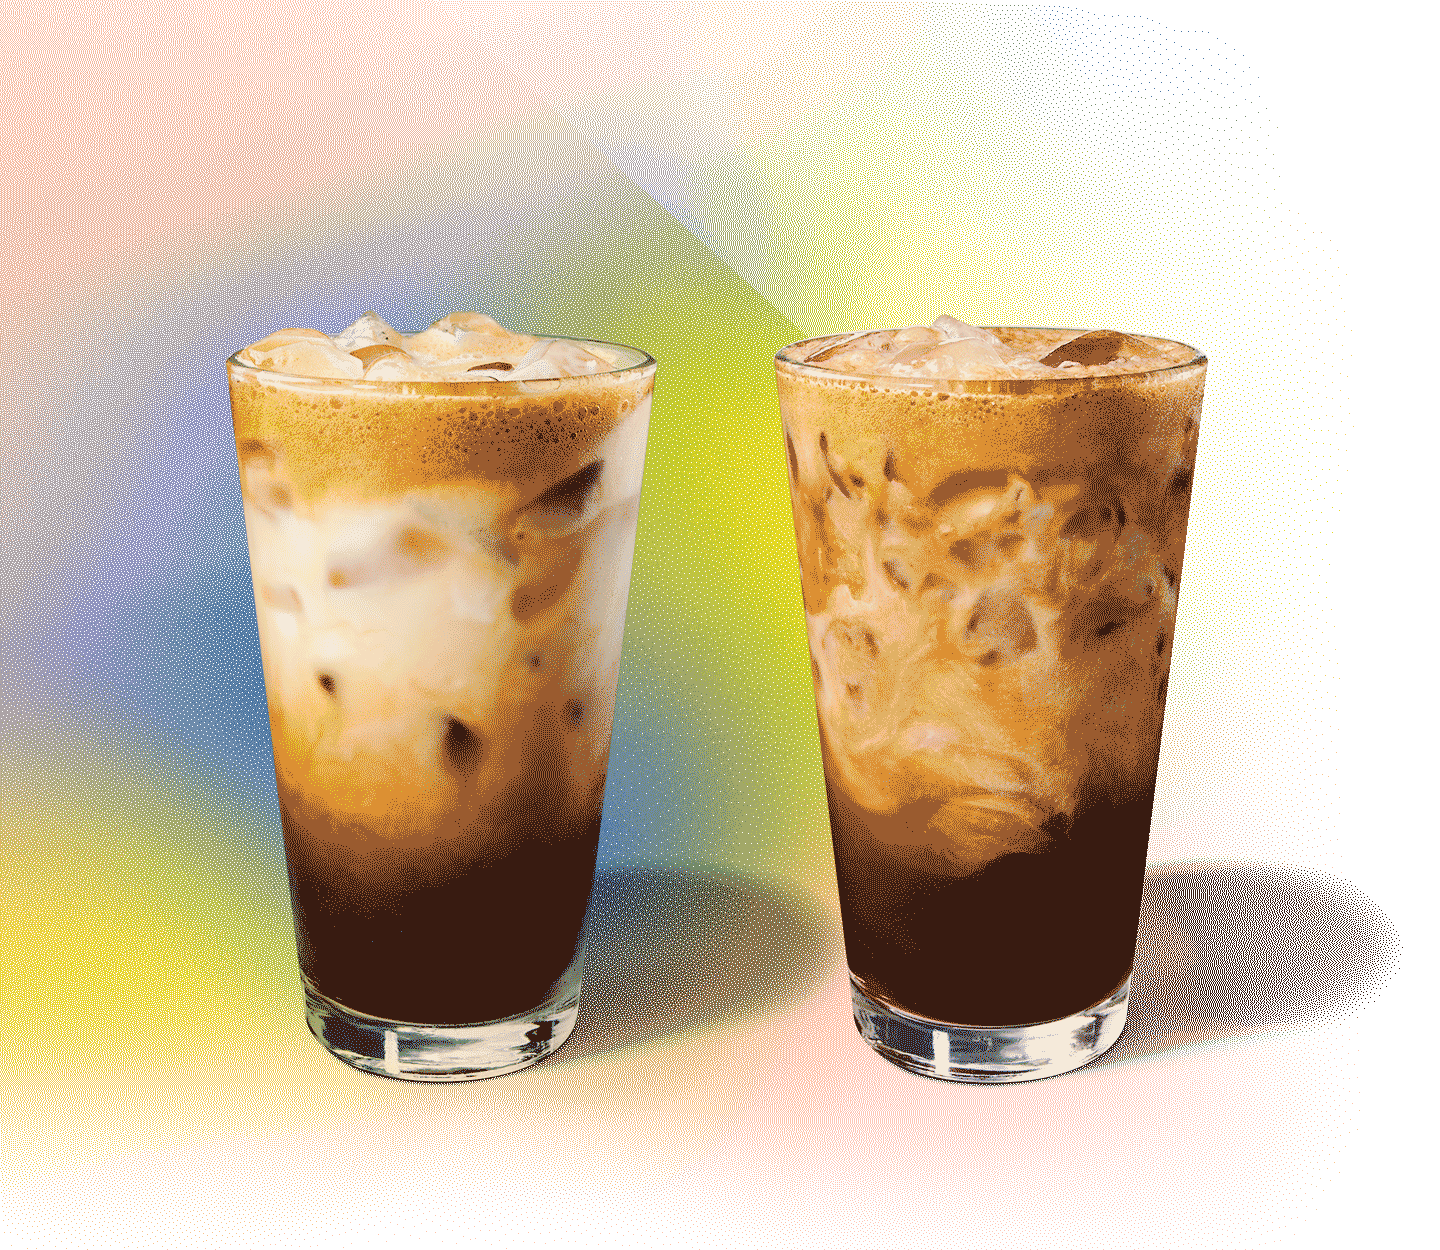 Two iced drinks with creamy swirls sit side by side